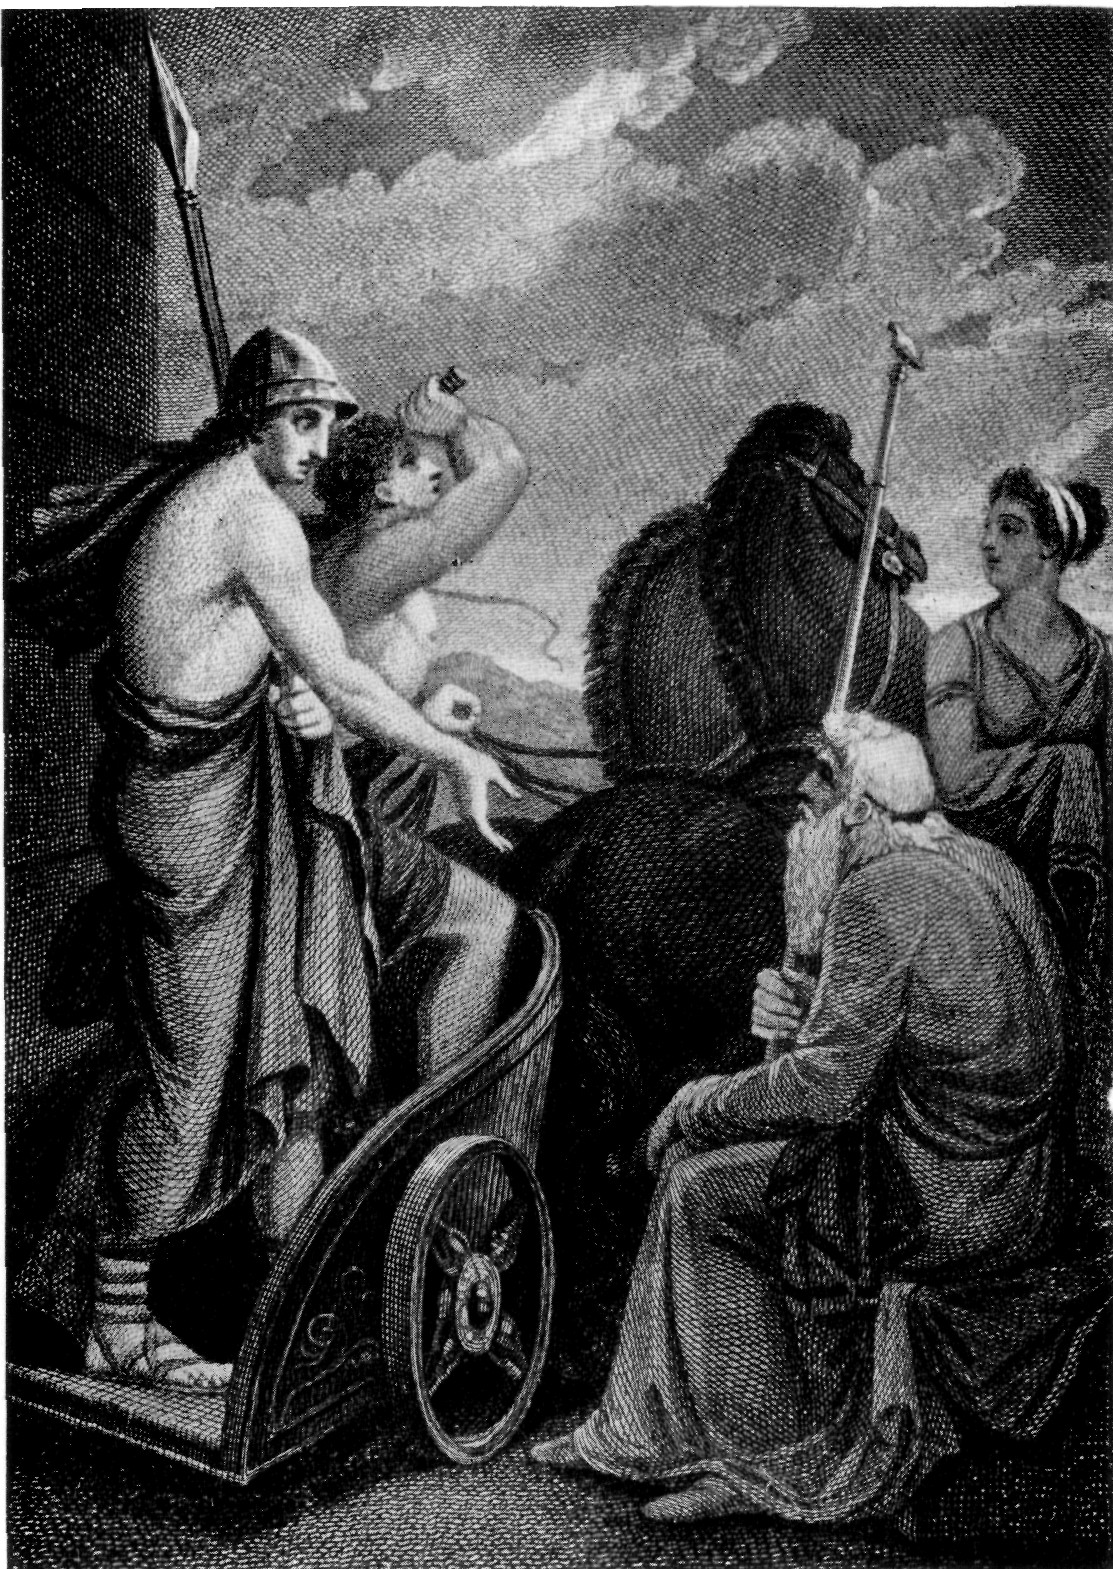 kill and odysseus slaughters bunches What is odysseus doing while his men slaughter helios' cattle in book xii - 1908503.